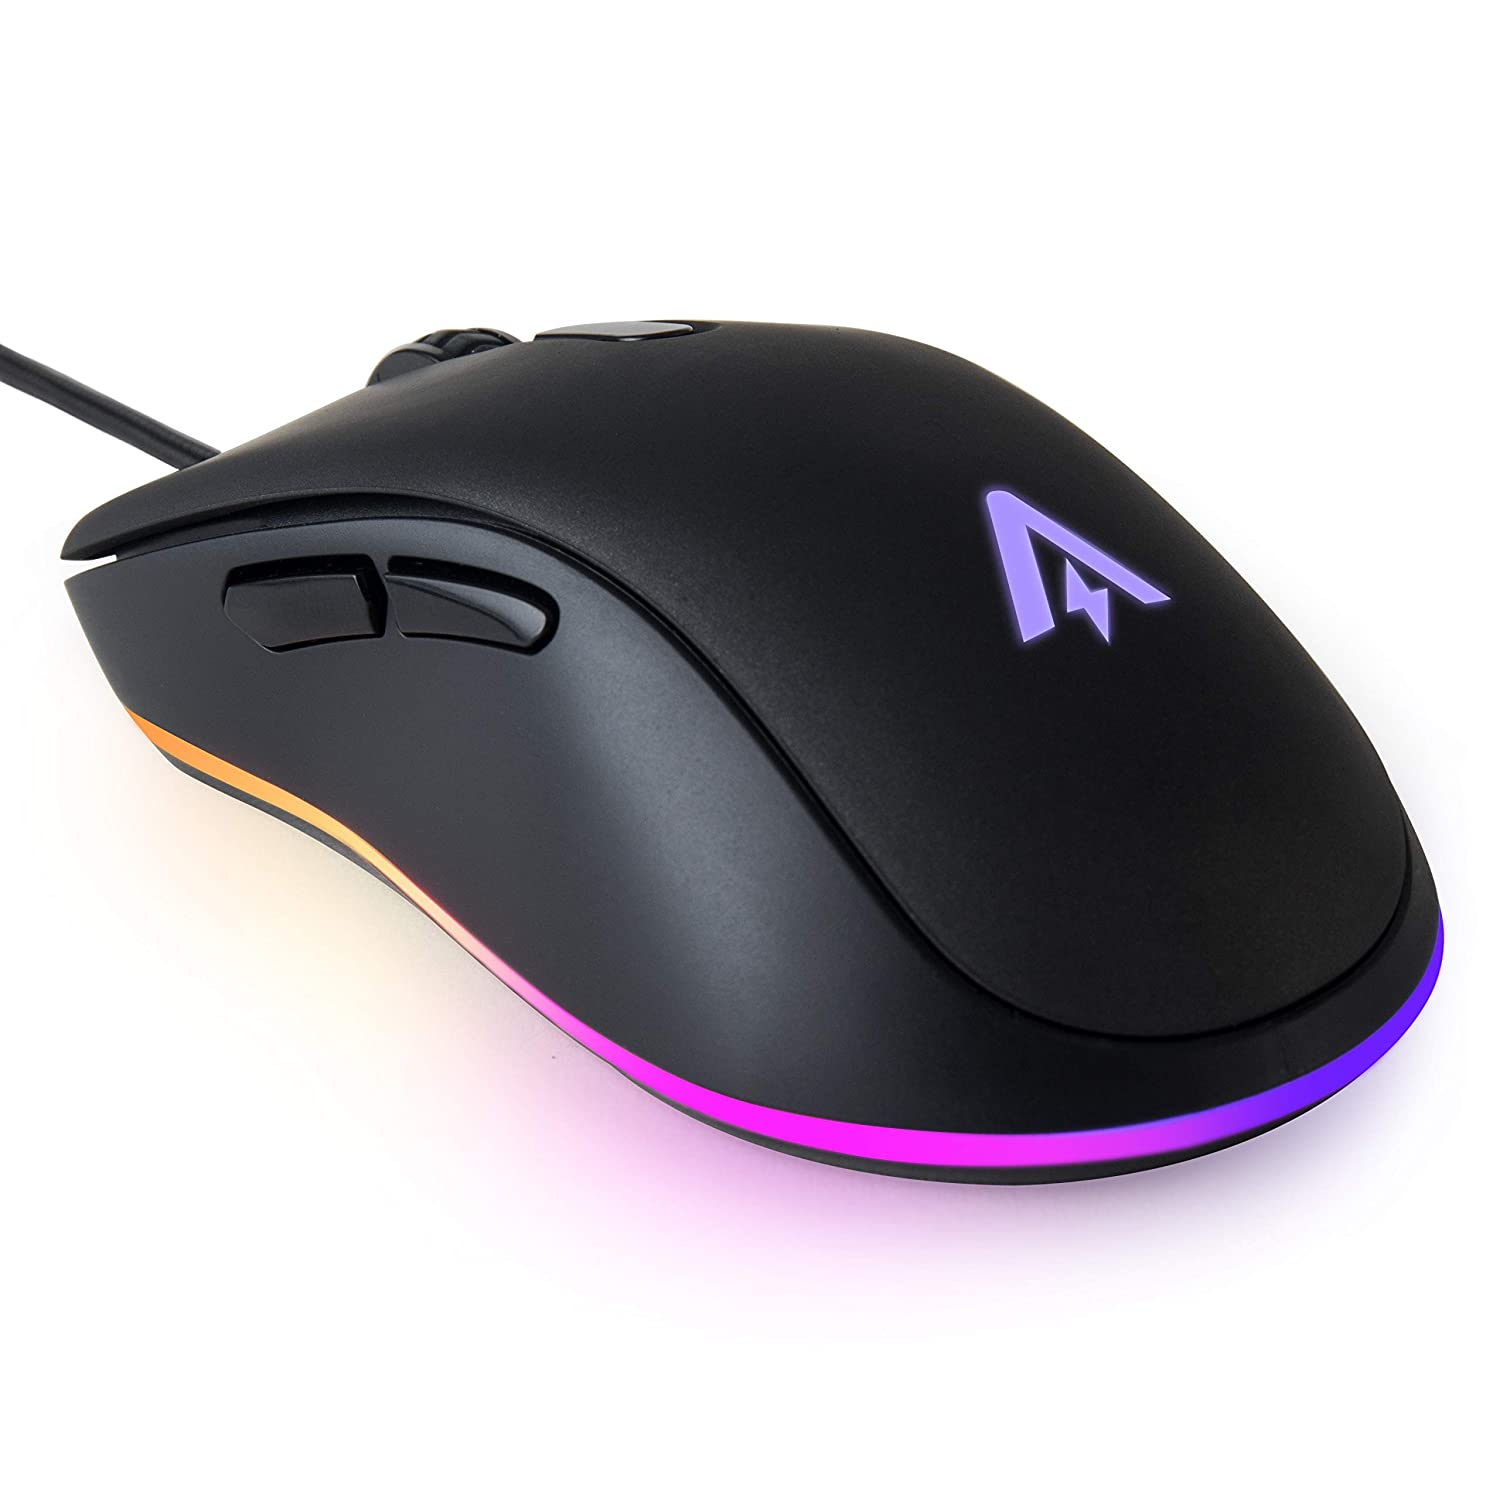 Anker Gaming Mouse with 6Dpi Levels 800, 1600, 2400, 3200, 4800, and 6400 , 1000 Hz Polling Rate, Programmable Buttons, Ergonomic USB Computer Mouse, RGB Gamer Desktop Laptop PC Gaming Mouse